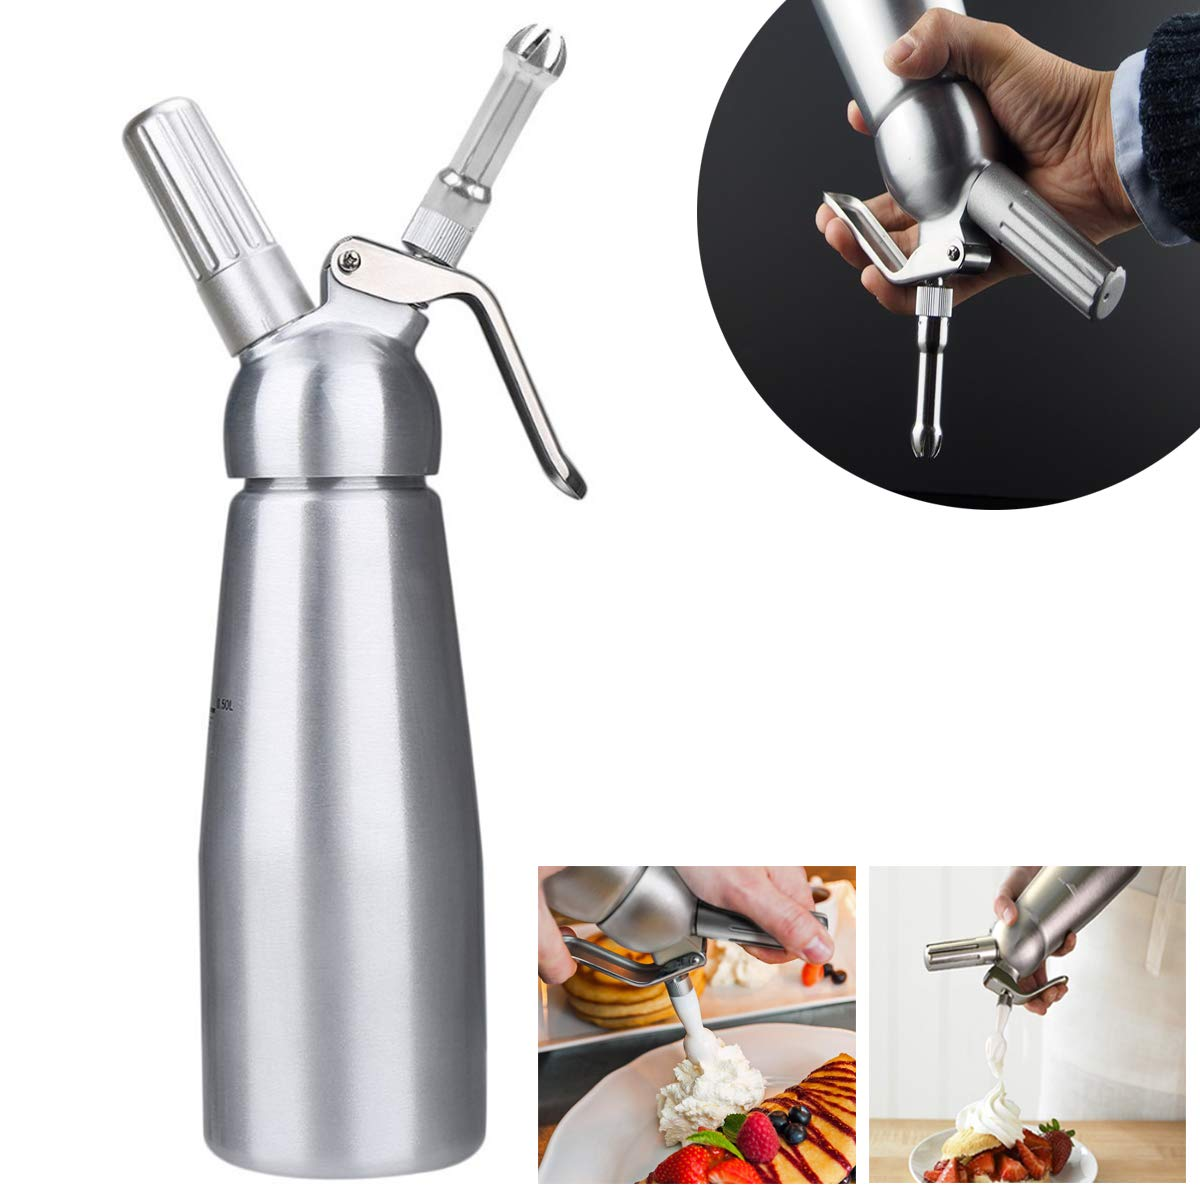 Cream Whipper Dispenser Aluminum Whipped Cream Dispenser with 3 Decorating Nozzles Professional Aluminum Cream Whipper Dispenser Cream Foamer for Whipping Cream 0.5 L Cream Foamer by Upstartech